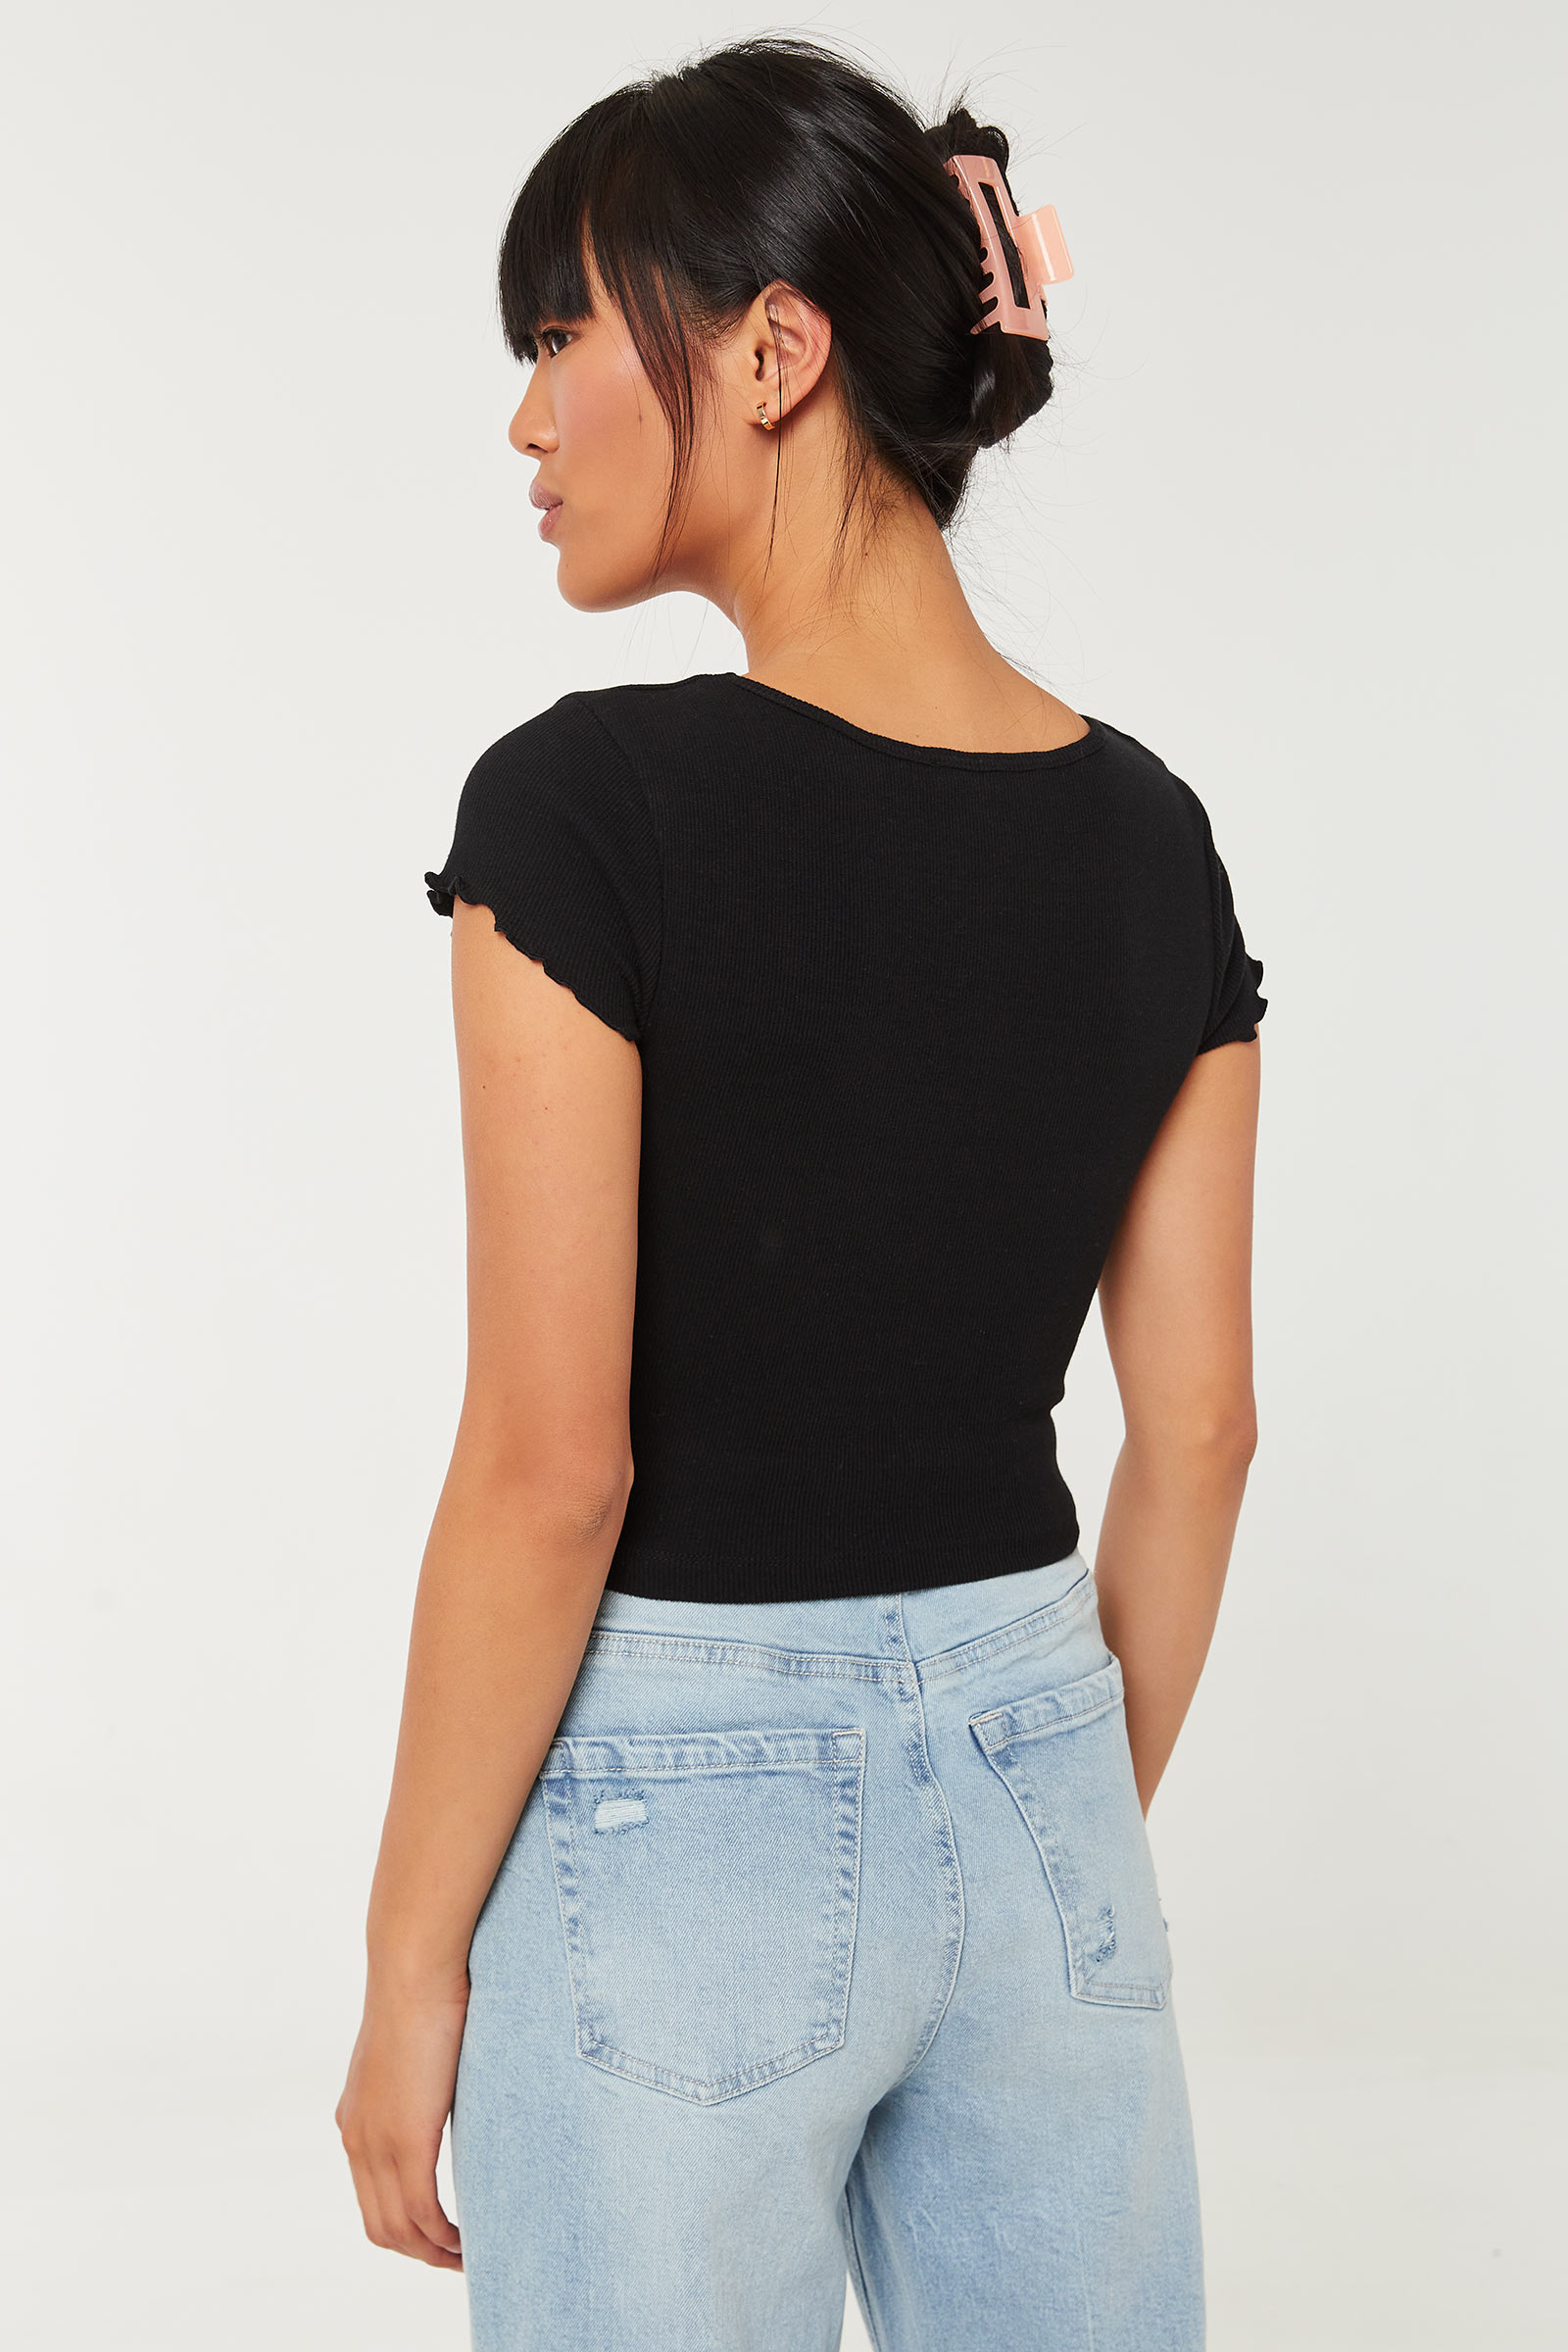 Crop Top with Lettuce Edge Sleeves